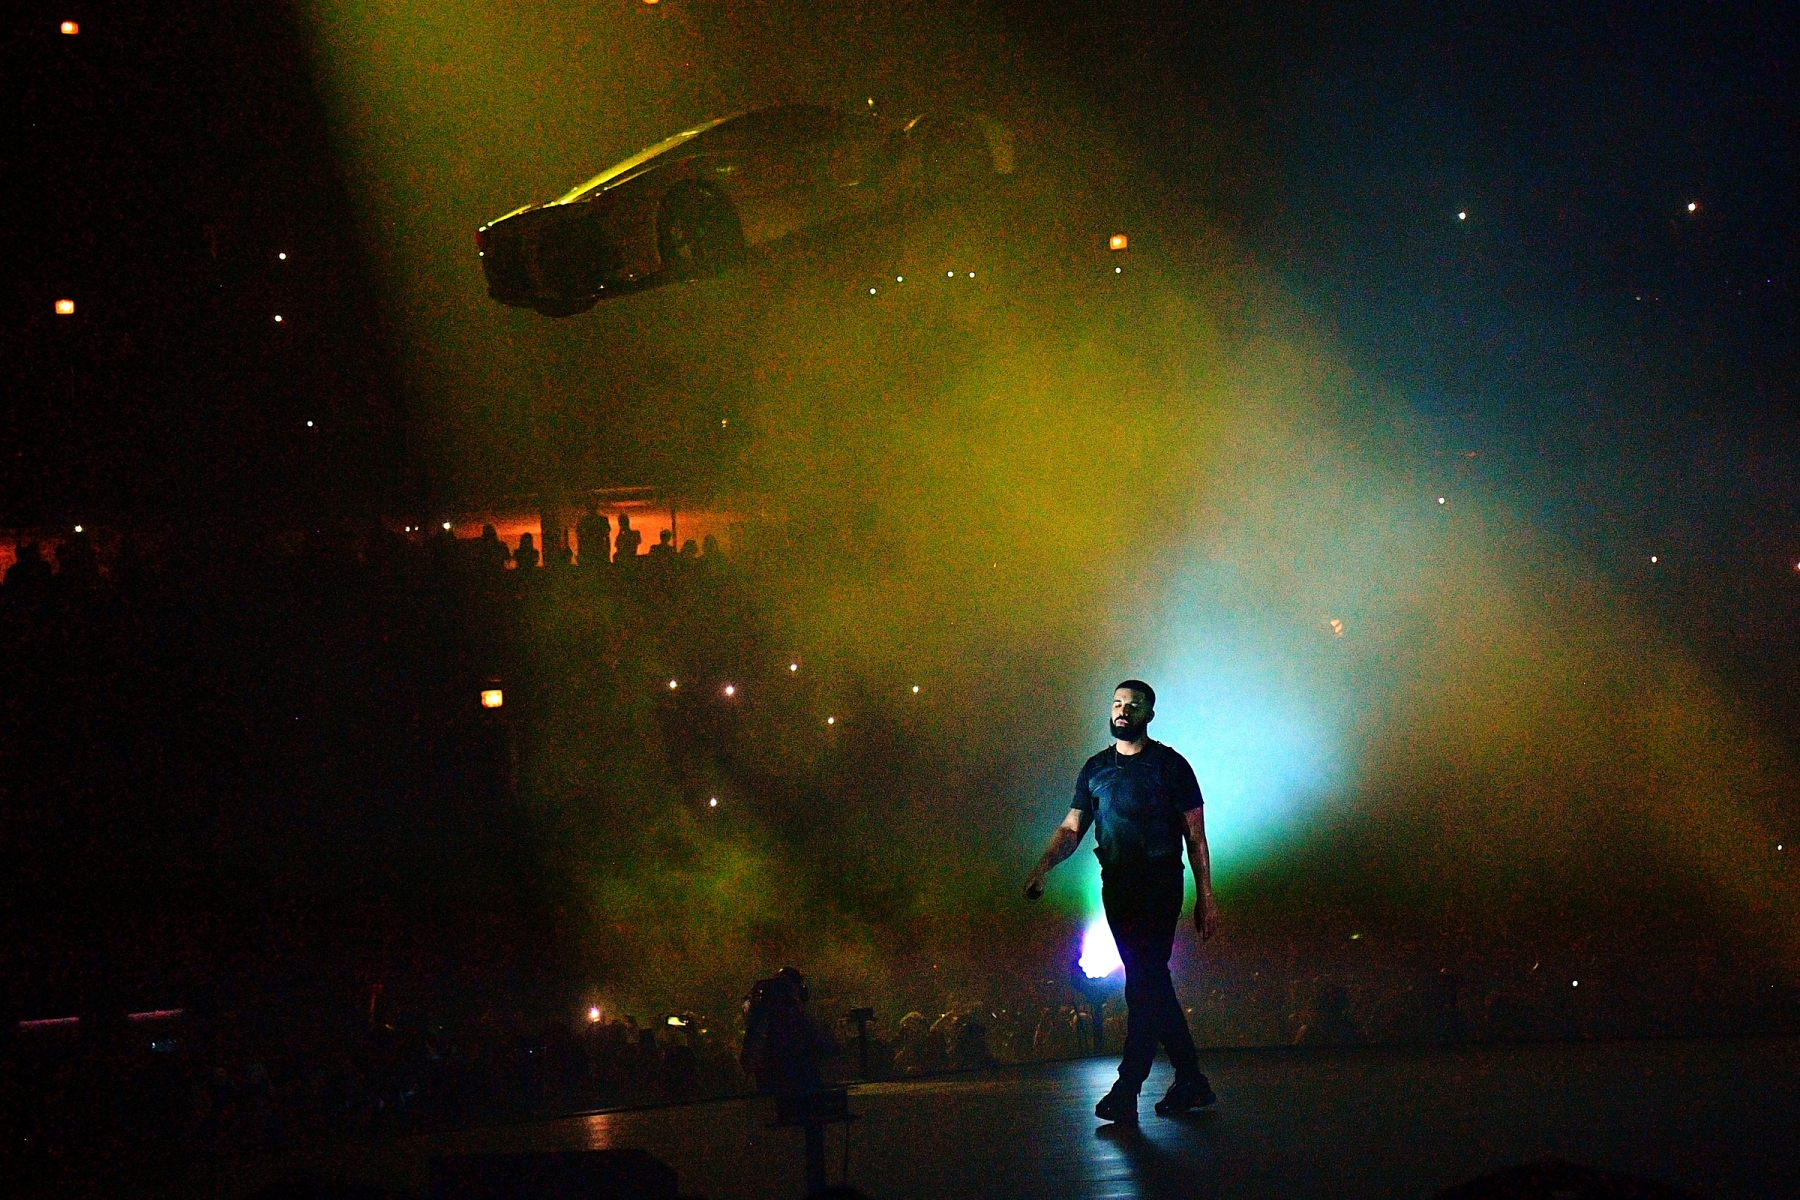 CHICAGO, IL - AUGUST 17: Drake performs in Concert at Aubrey & The Three Amigos Tour - Chicago, Illinois at United Center on August 17, 2018 in Chicago, Illinois.(Photo by Prince Williams/Wireimage)